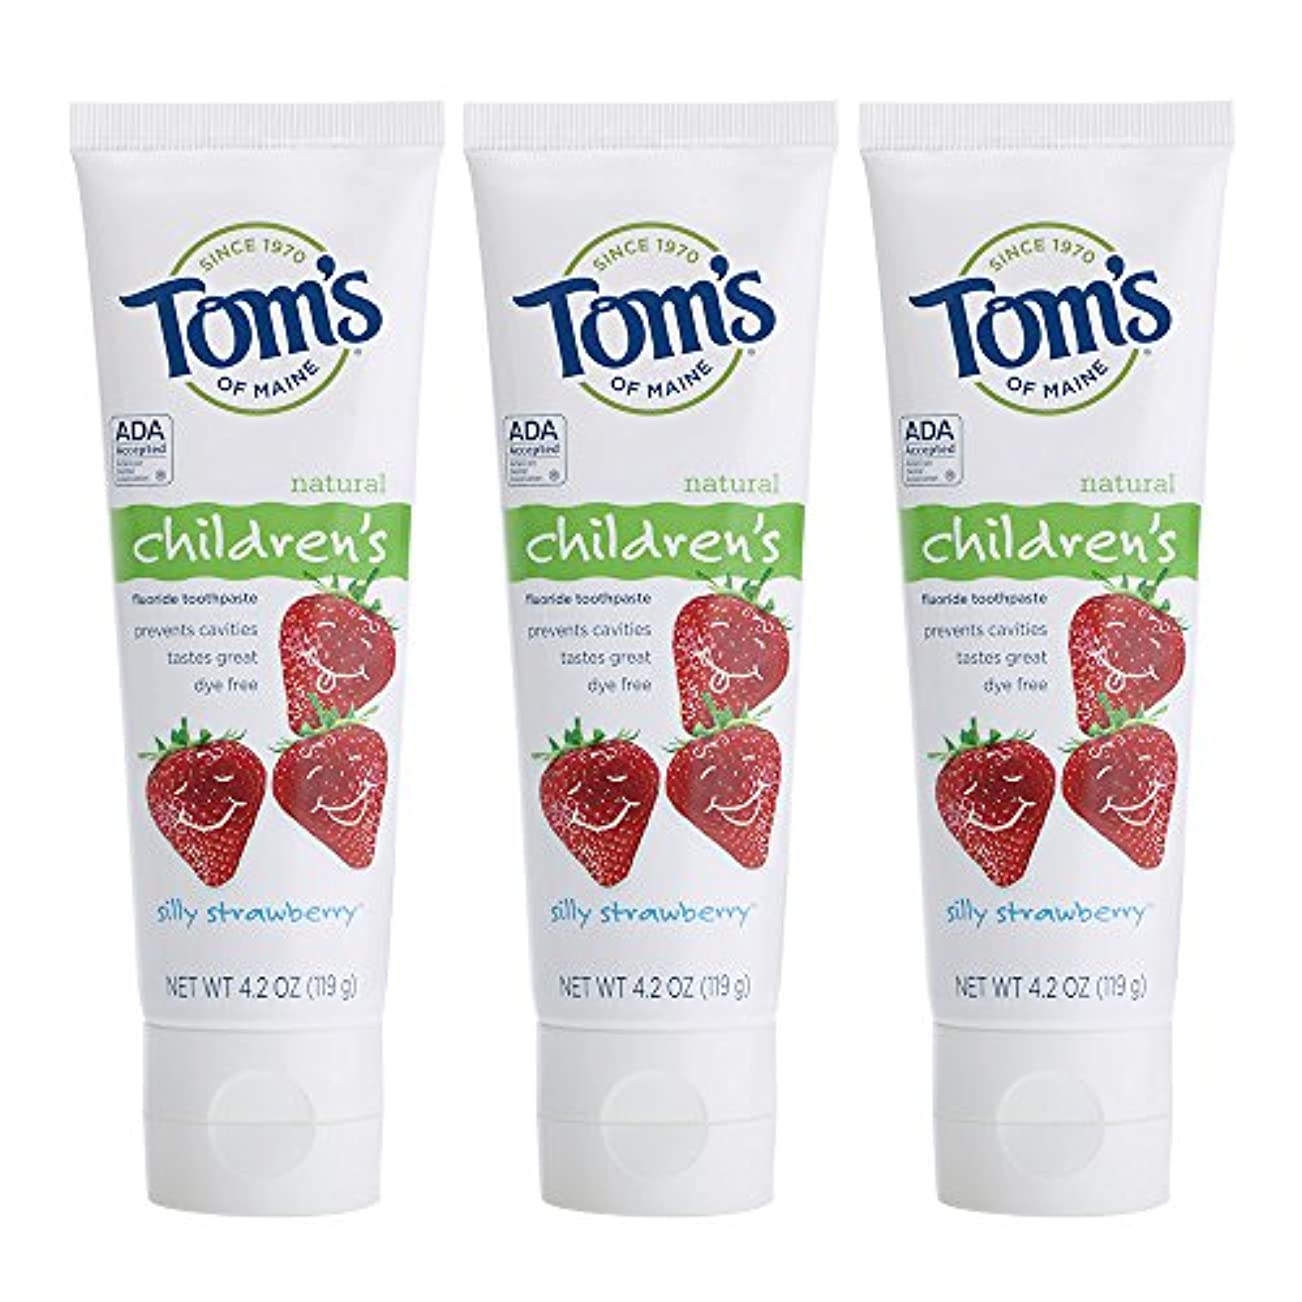 することになっている鹿剥ぎ取るTom's of Maine, Natural Children's Fluoride Toothpaste, Silly Strawberry, 4.2 oz (119 g)